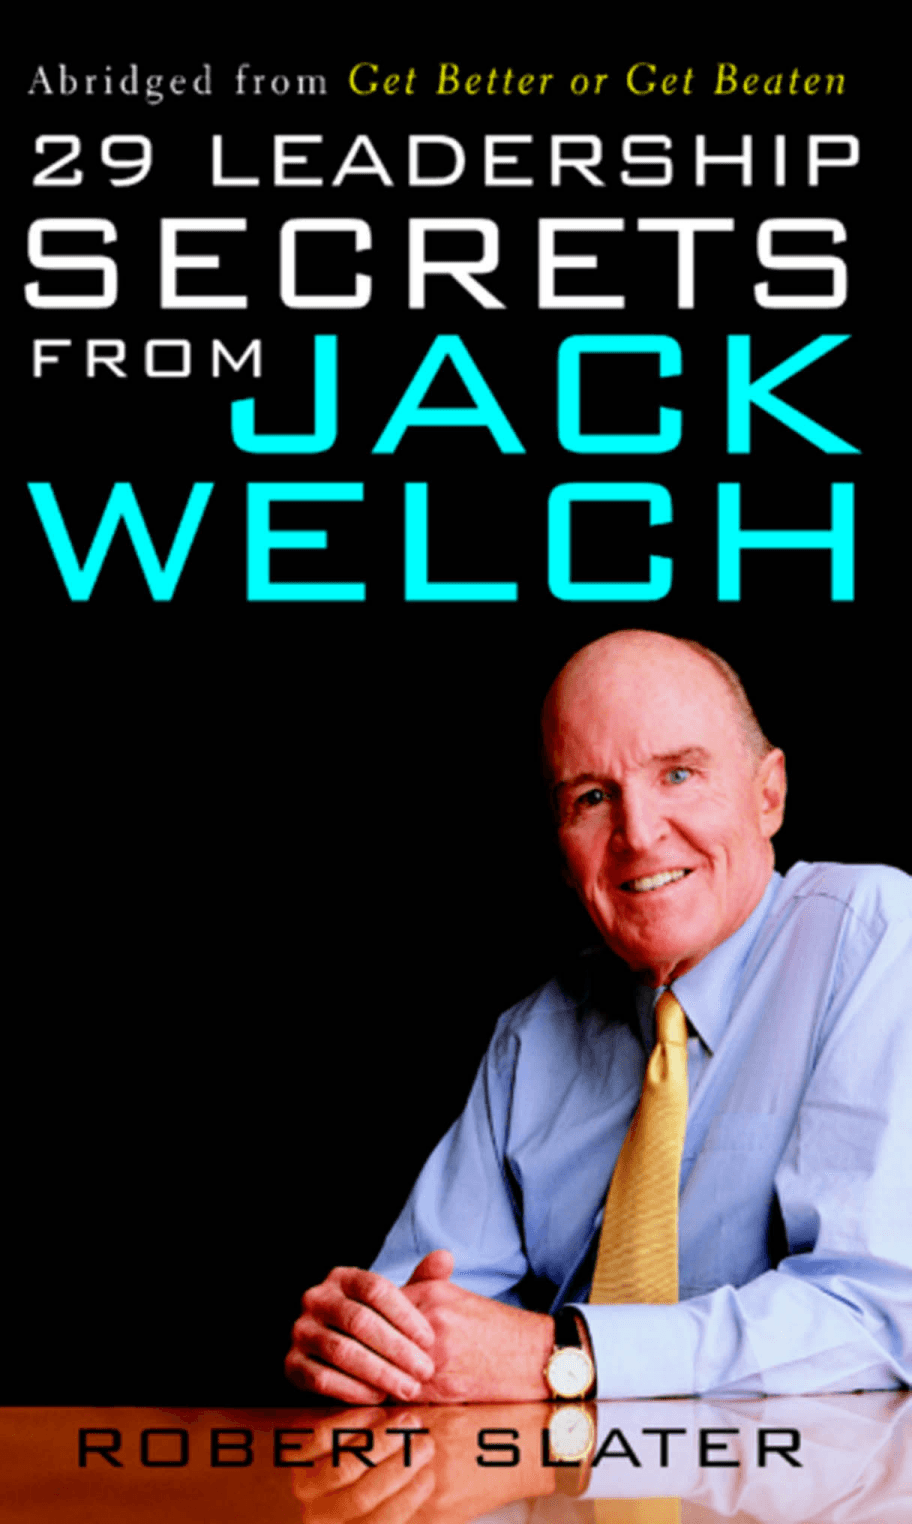 jack welchs leadership Ges two decade transformation: jack welchs leadership case solution,ges two decade transformation: jack welchs leadership case analysis, ges two decade transformation: jack welchs leadership case study solution, ges two- decade transformation: jack welch's leadership question 1 jack welch faced some.